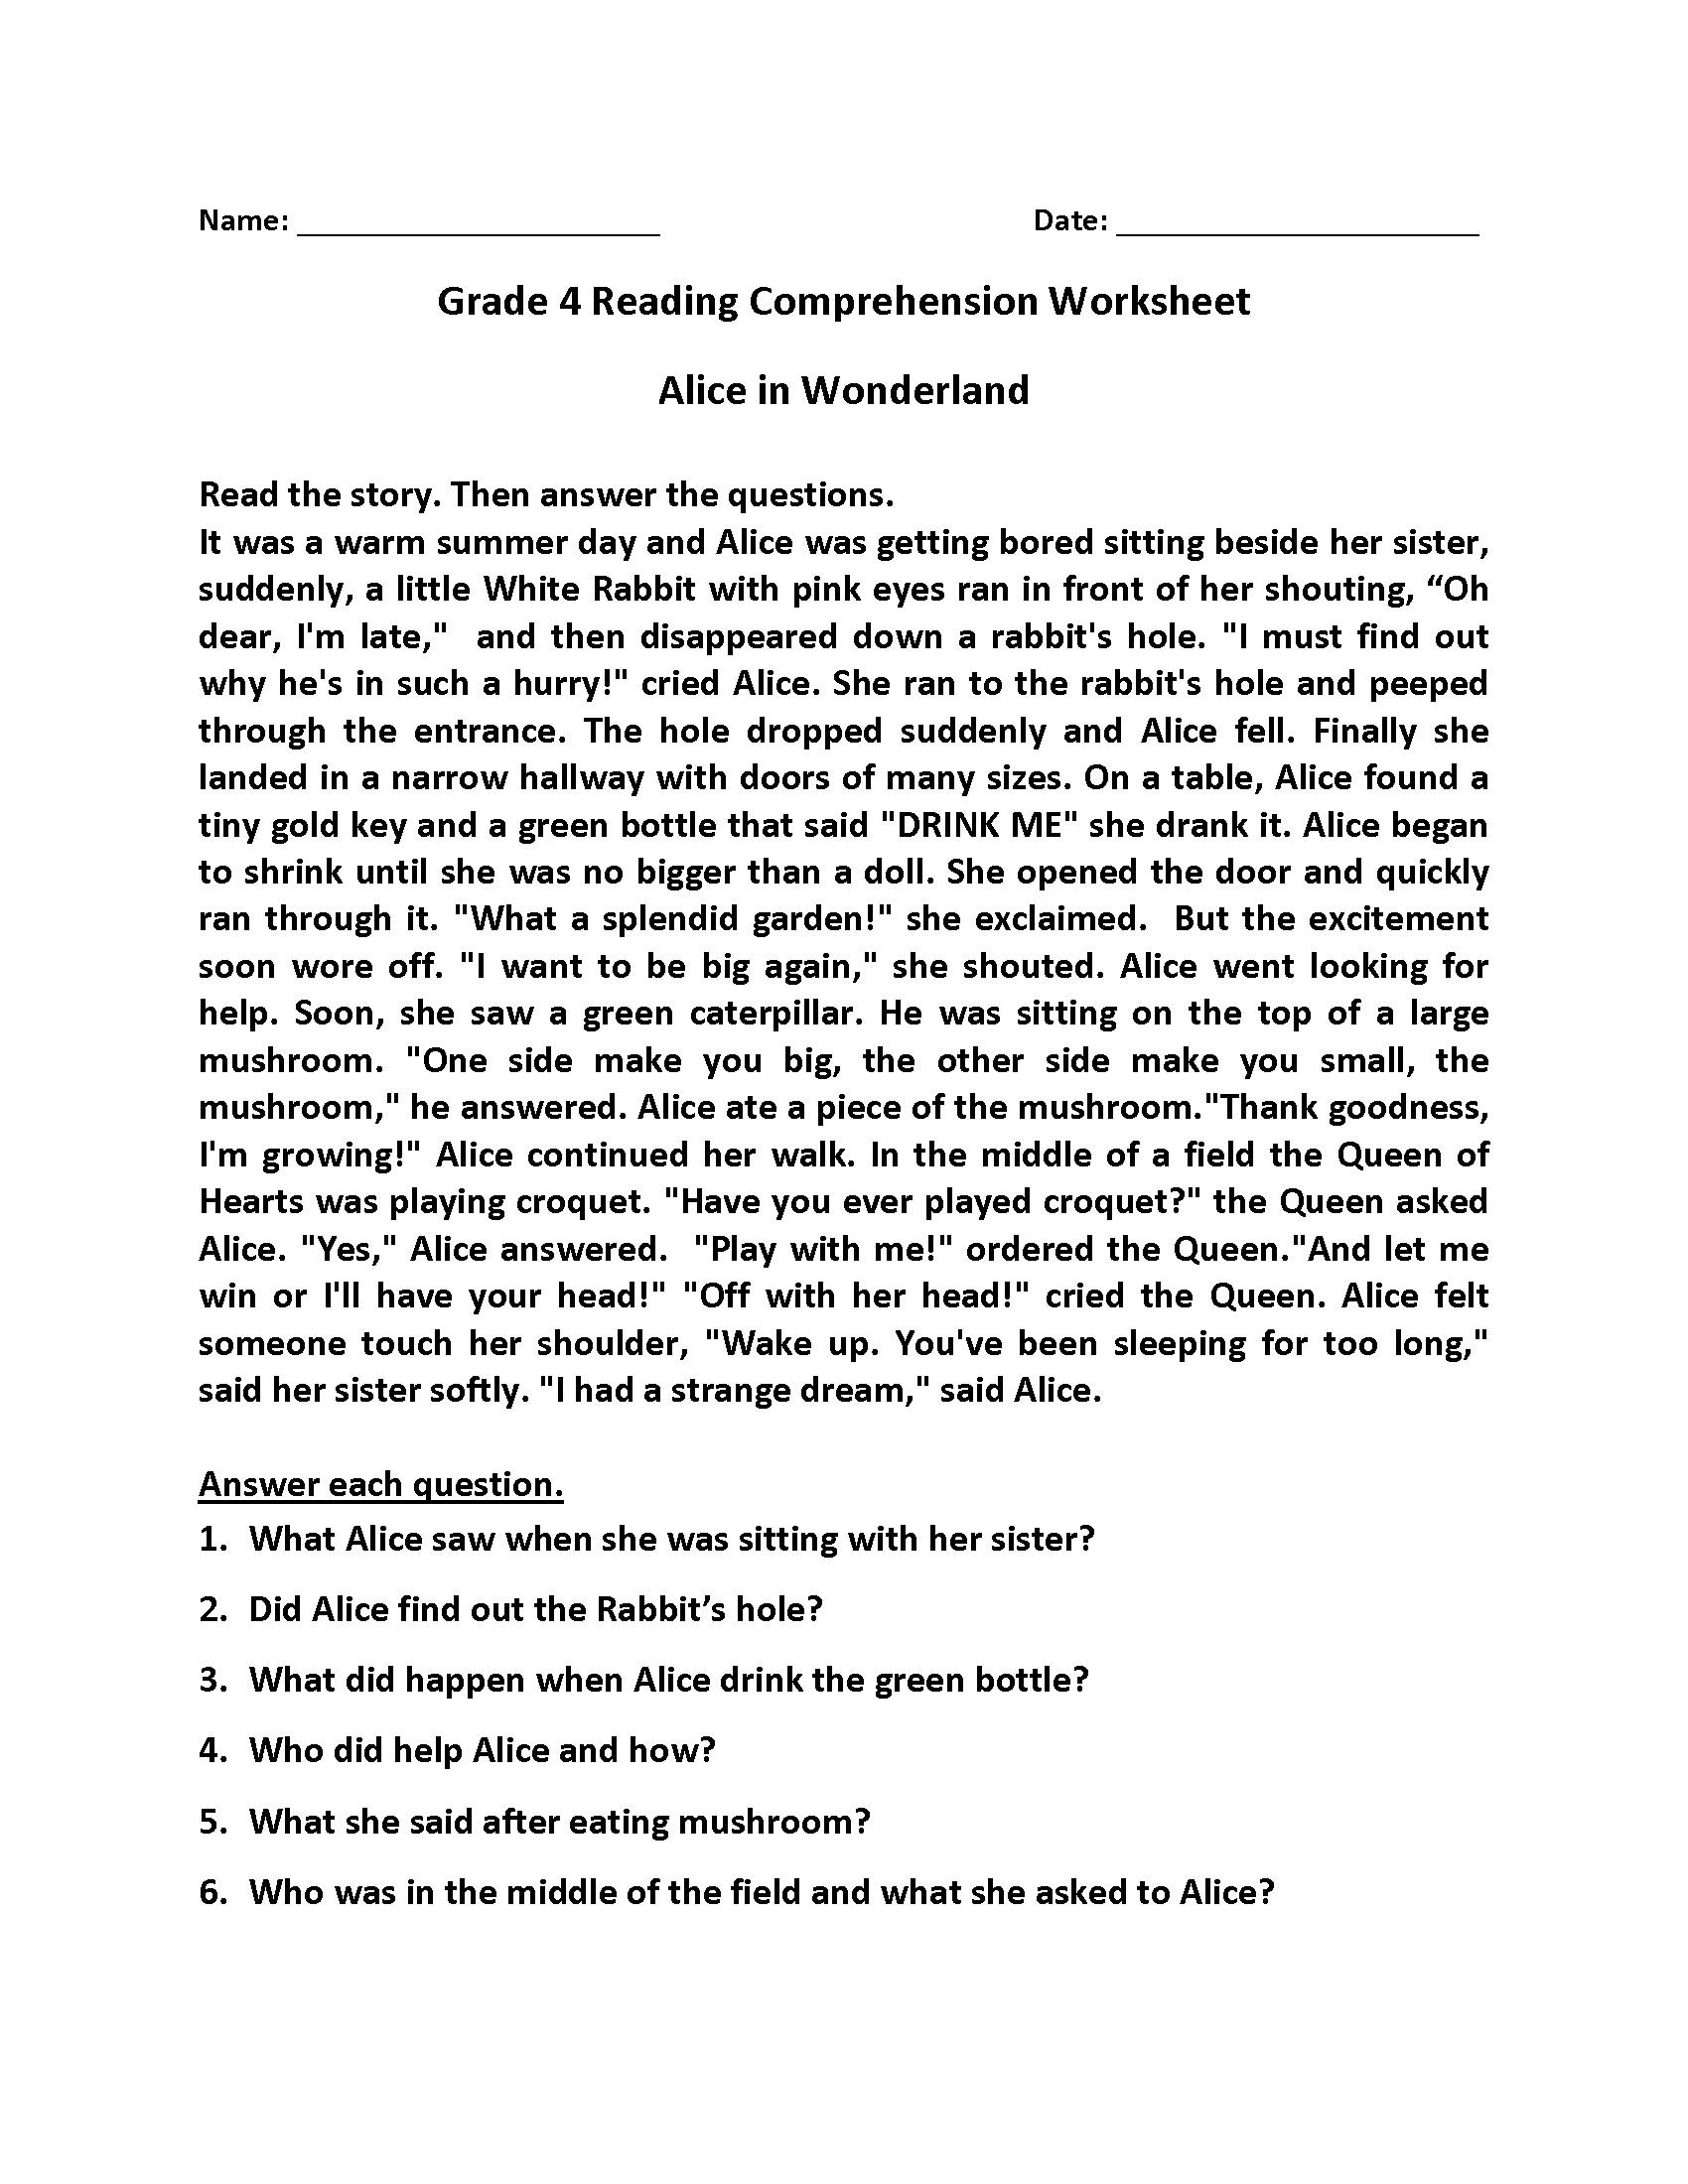 Best Reading Worksheet For Grade 4 4th Grade Reading